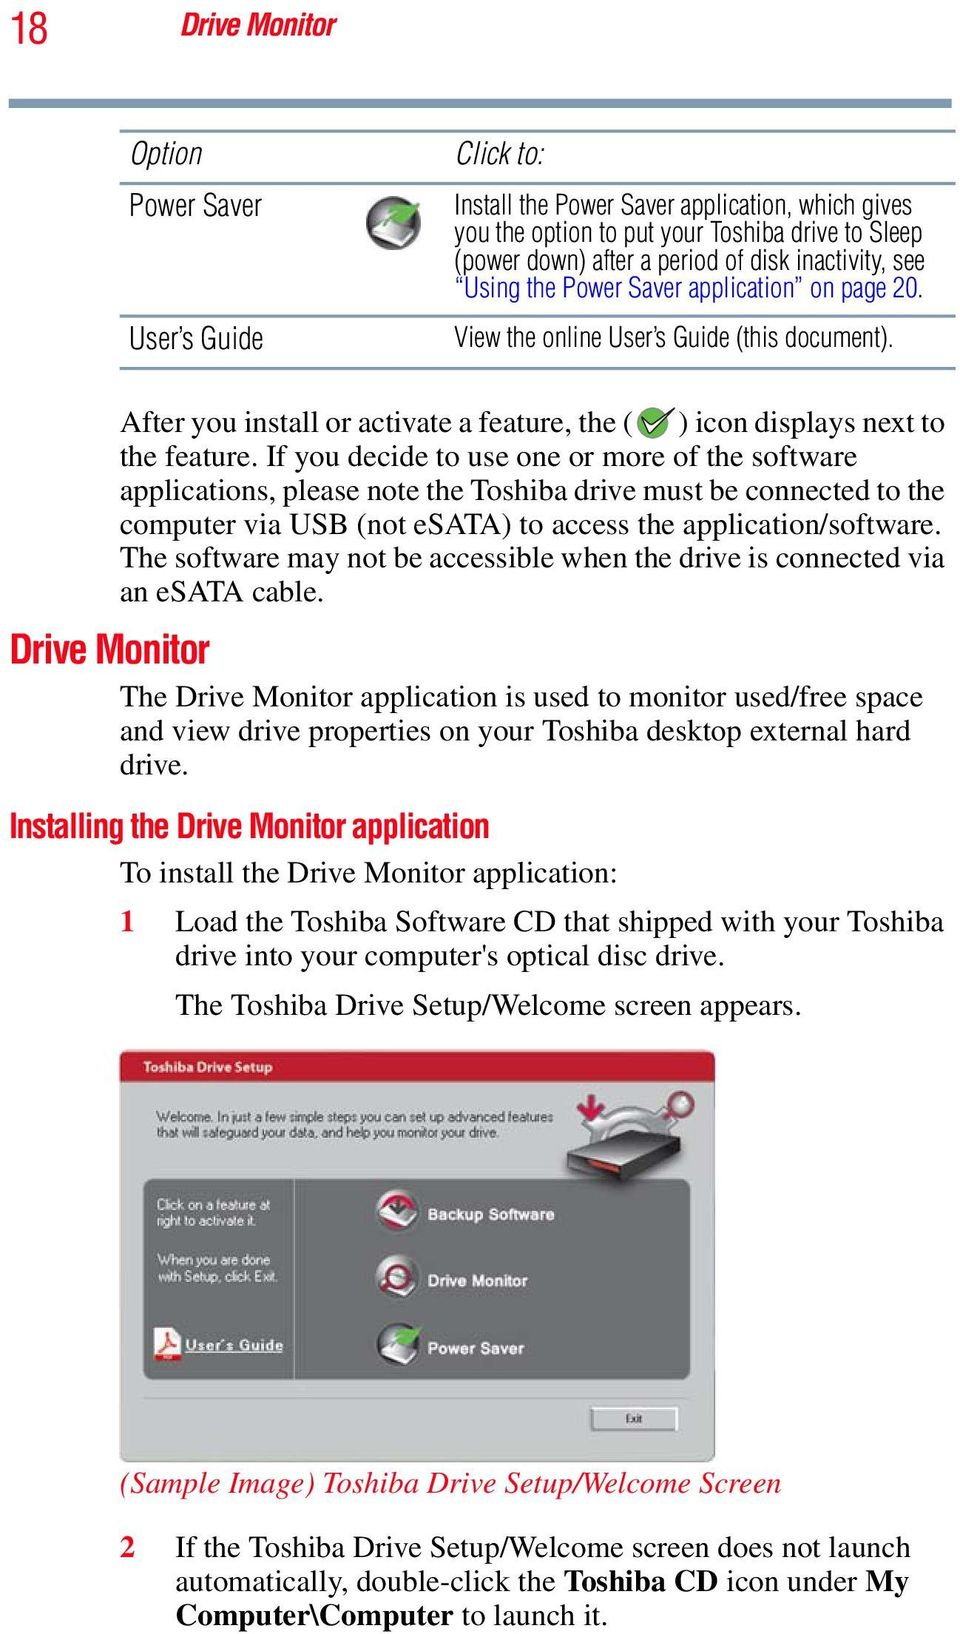 If you decide to use one or more of the software applications, please note the Toshiba drive must be connected to the computer via USB (not esata) to access the application/software.